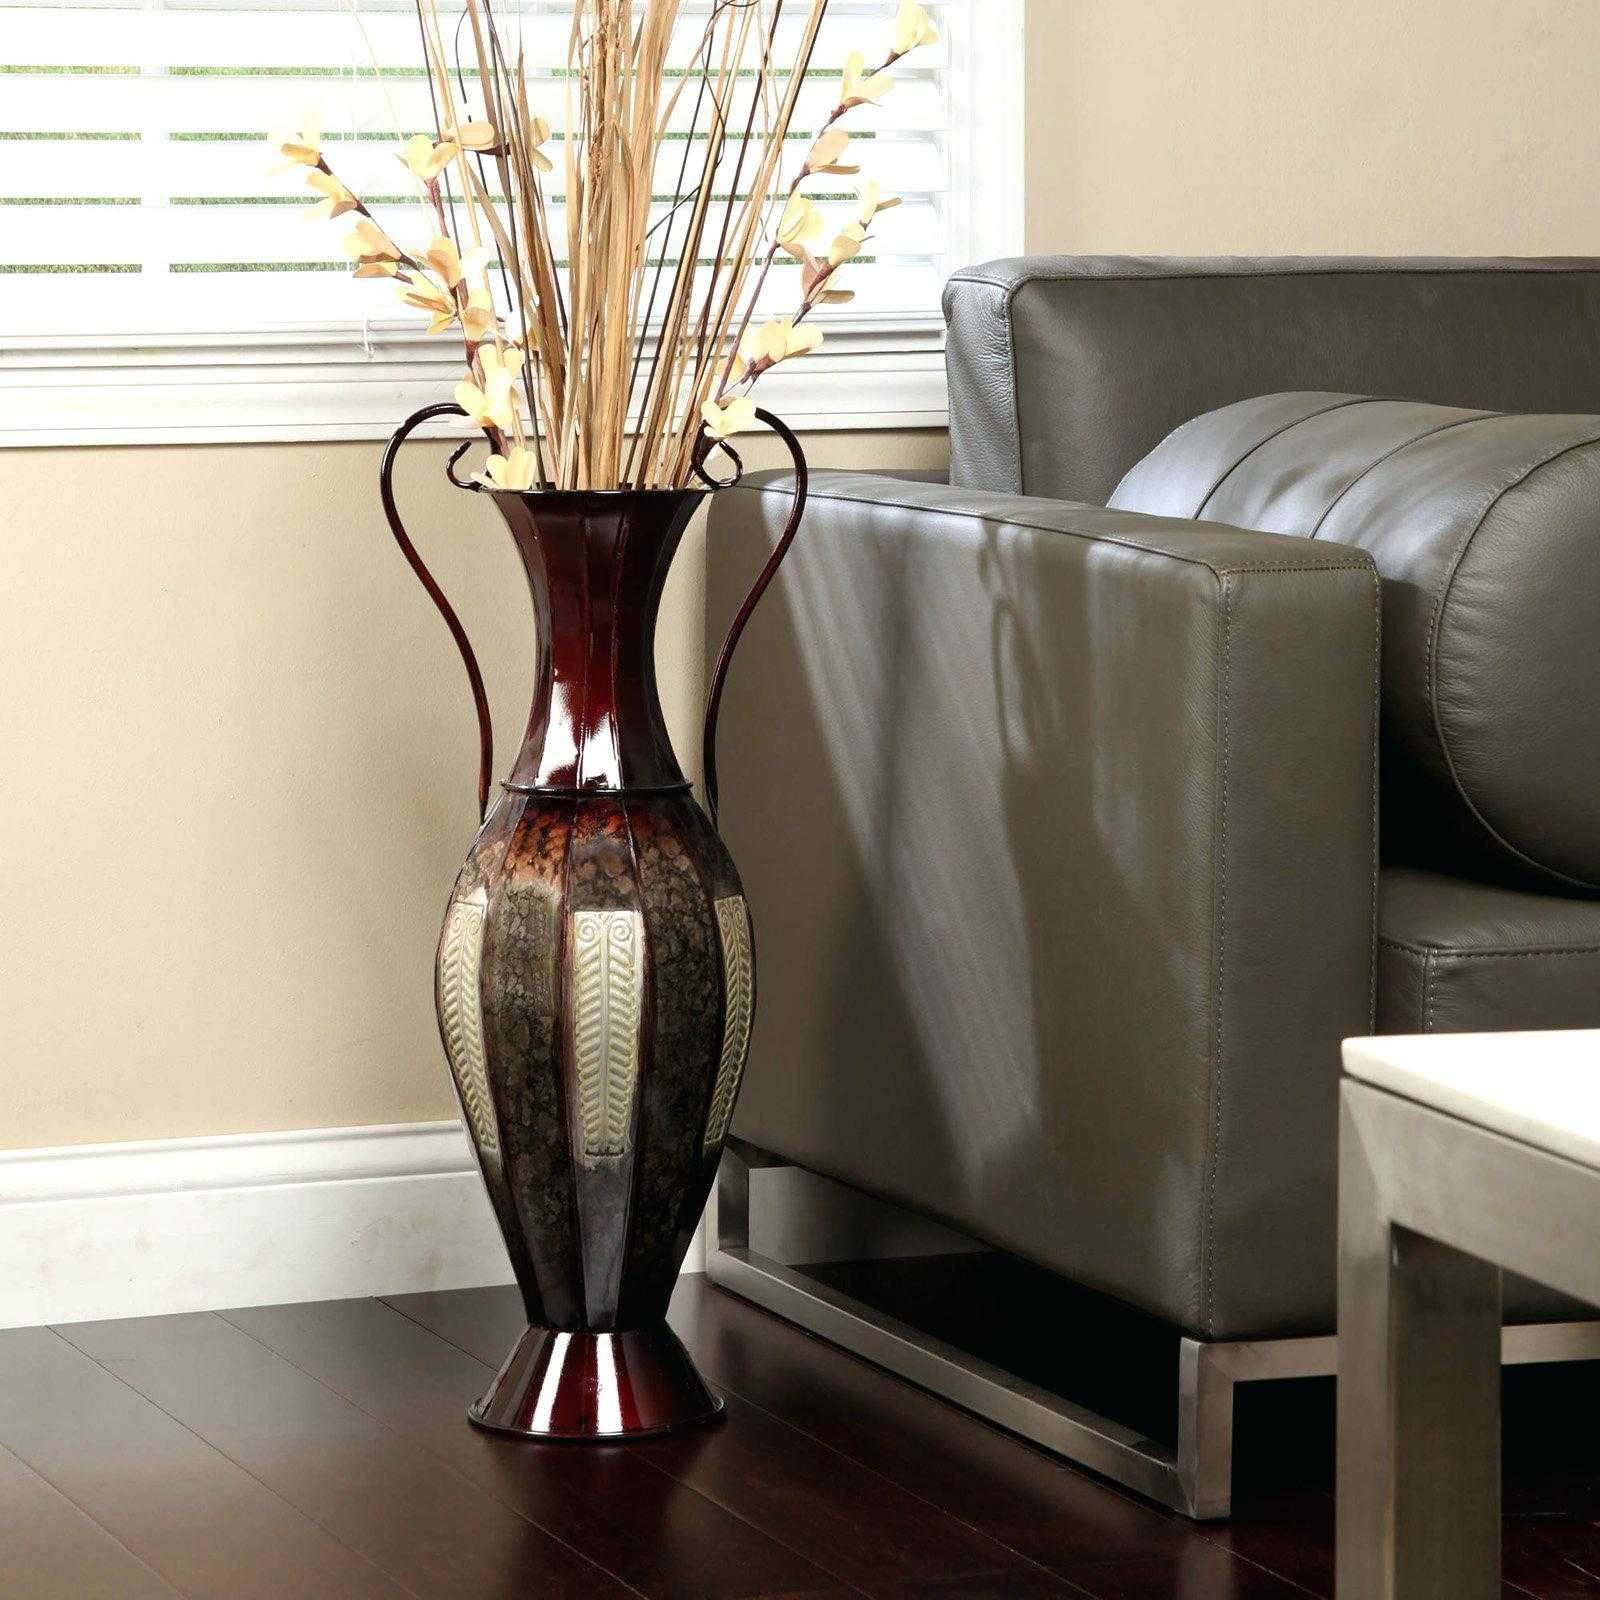 Brown Glass Vases wholesale Of Big Bedroom Ideas Luxury Big Vases for Living Room Modern Home Inside Big Bedroom Ideas Luxury Big Vases for Living Room Modern Home Design Ideas House Workh I 0d